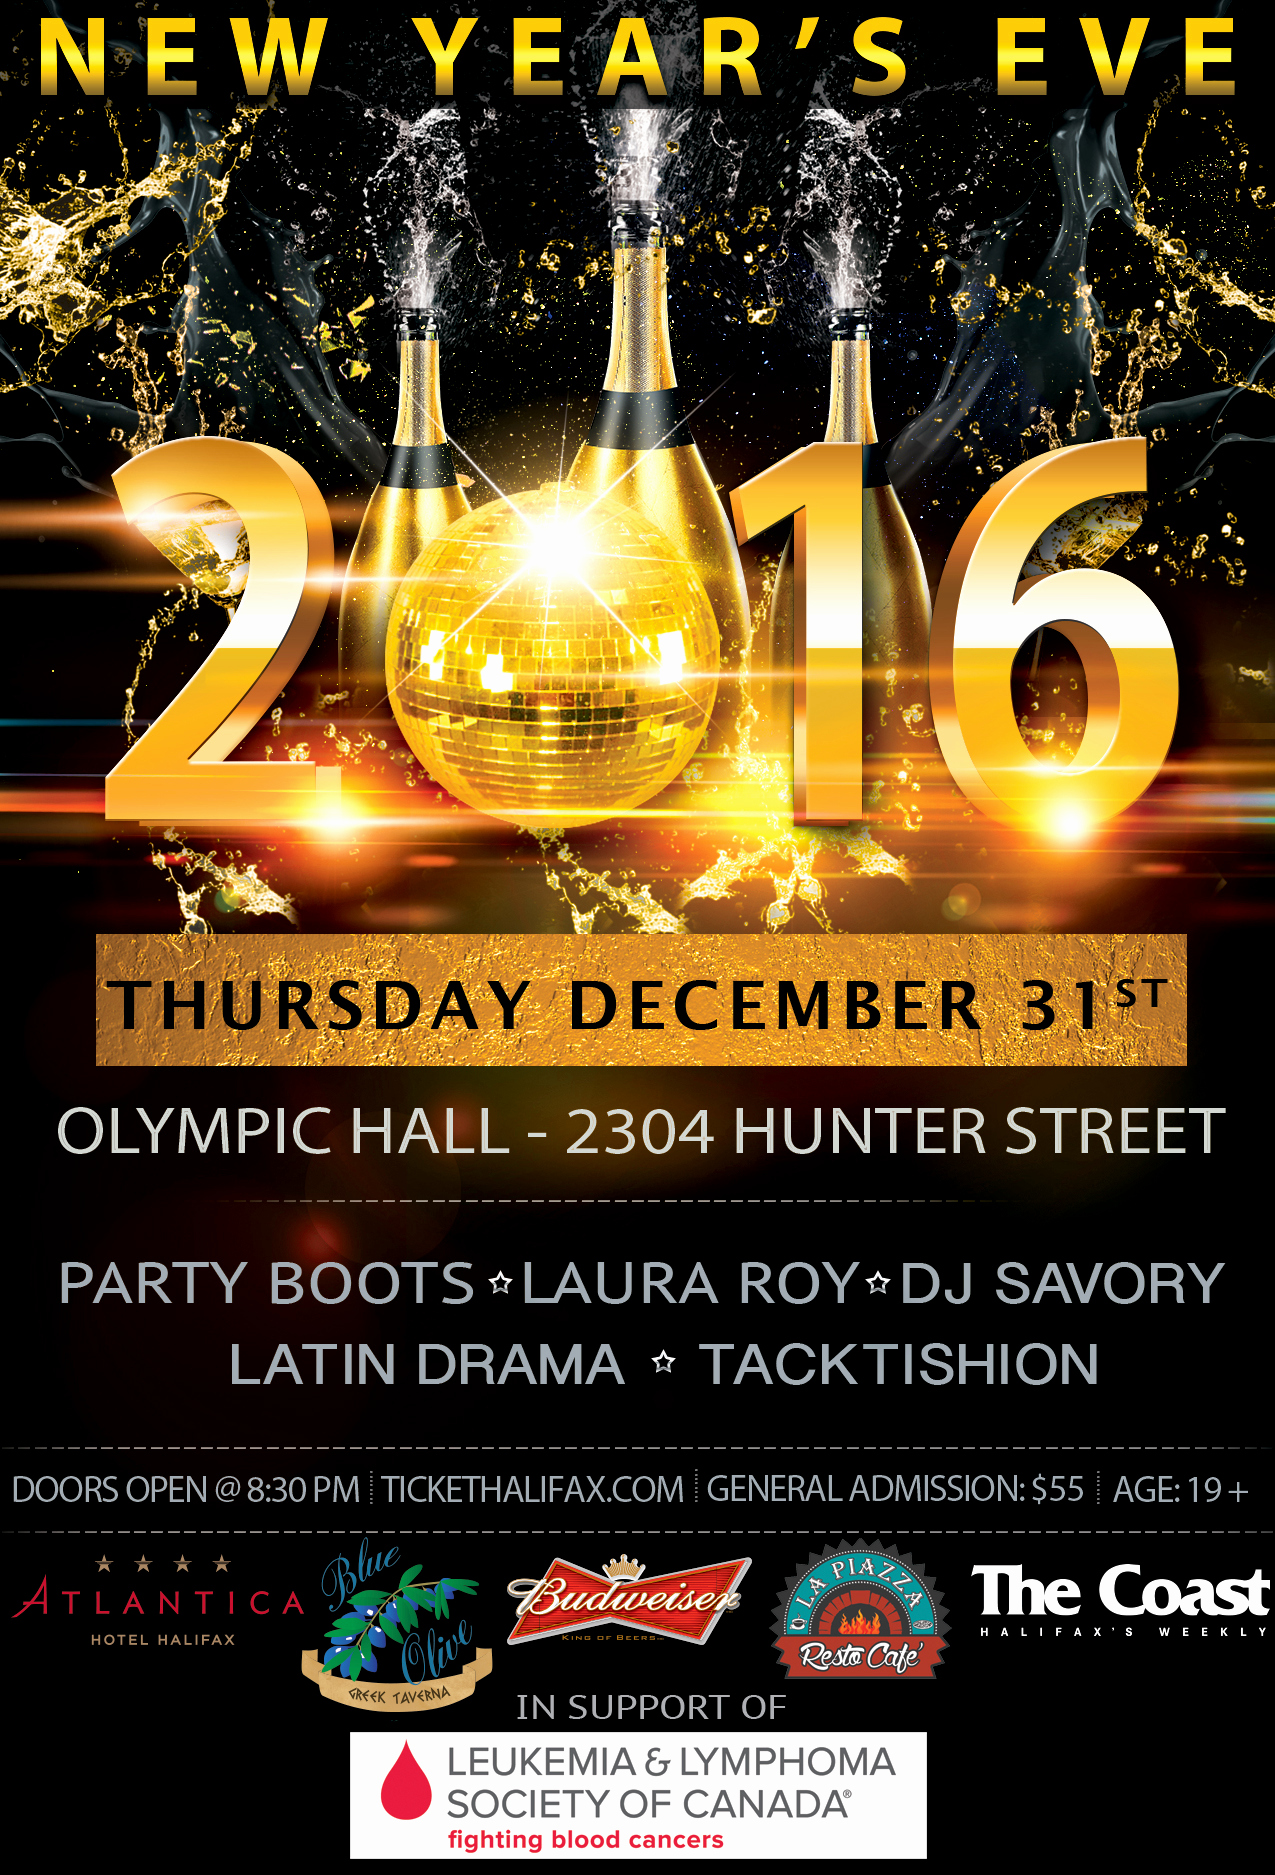 New Years Eve Flyer Awesome New Year S Eve 2016 Party Boots Dj Savoury & Special